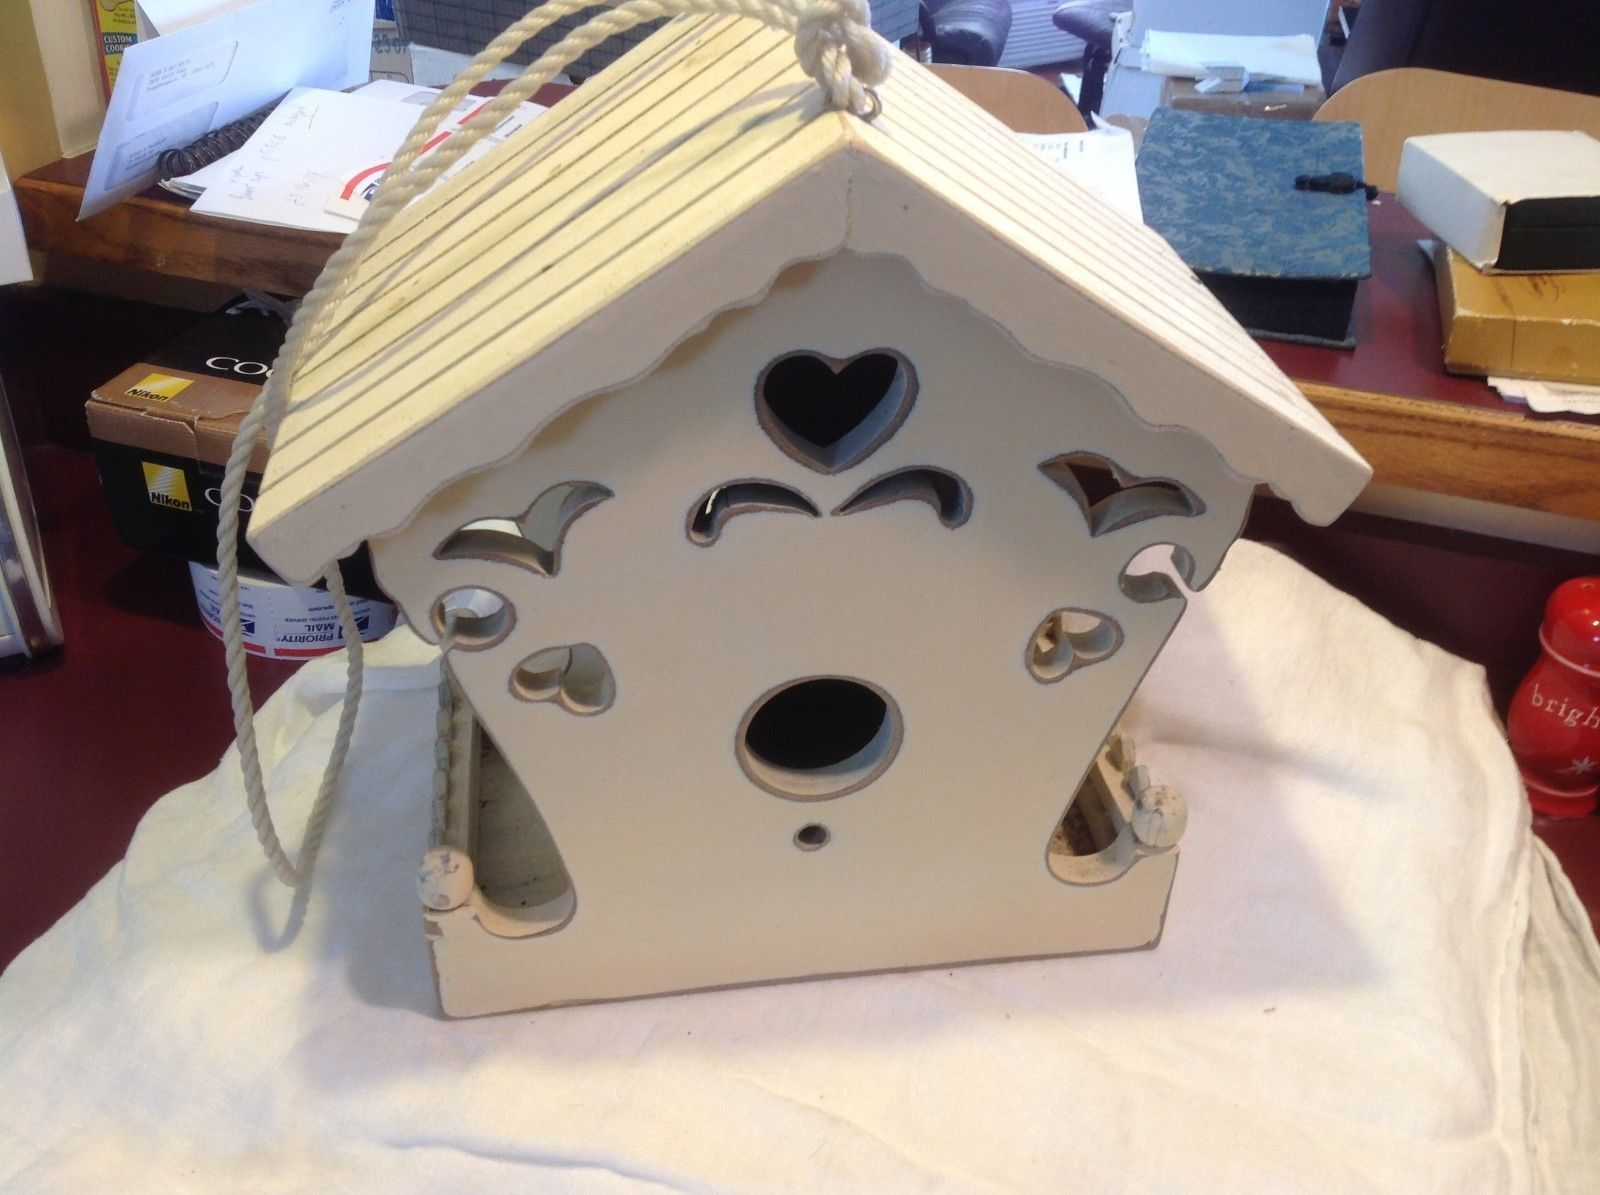 New birdhouse never used stored in the barn cream with hearts